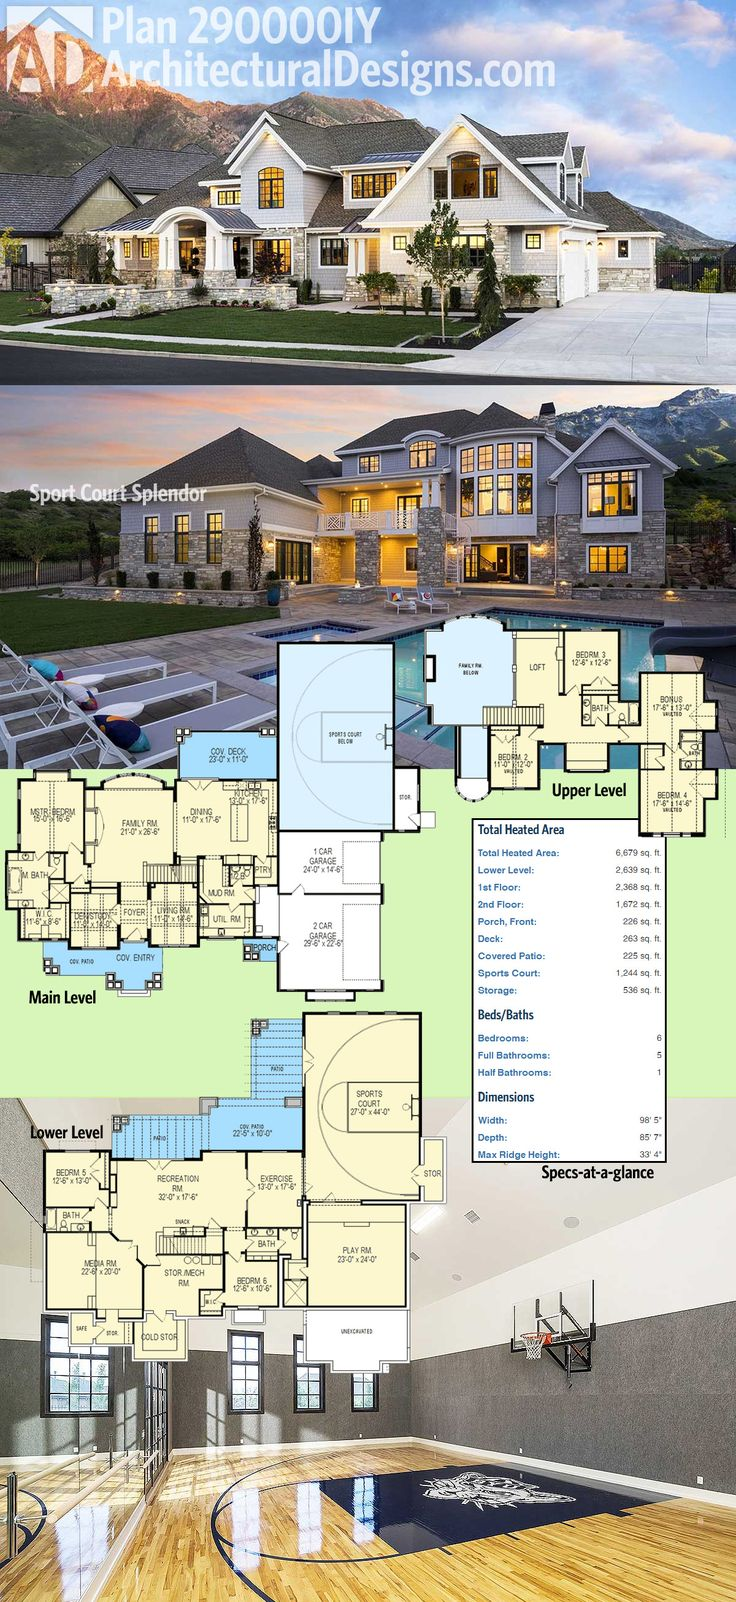 Architectural Designs Luxury House Plan 290000IY Comes With A Sport Court  In The Lower Walkout Level